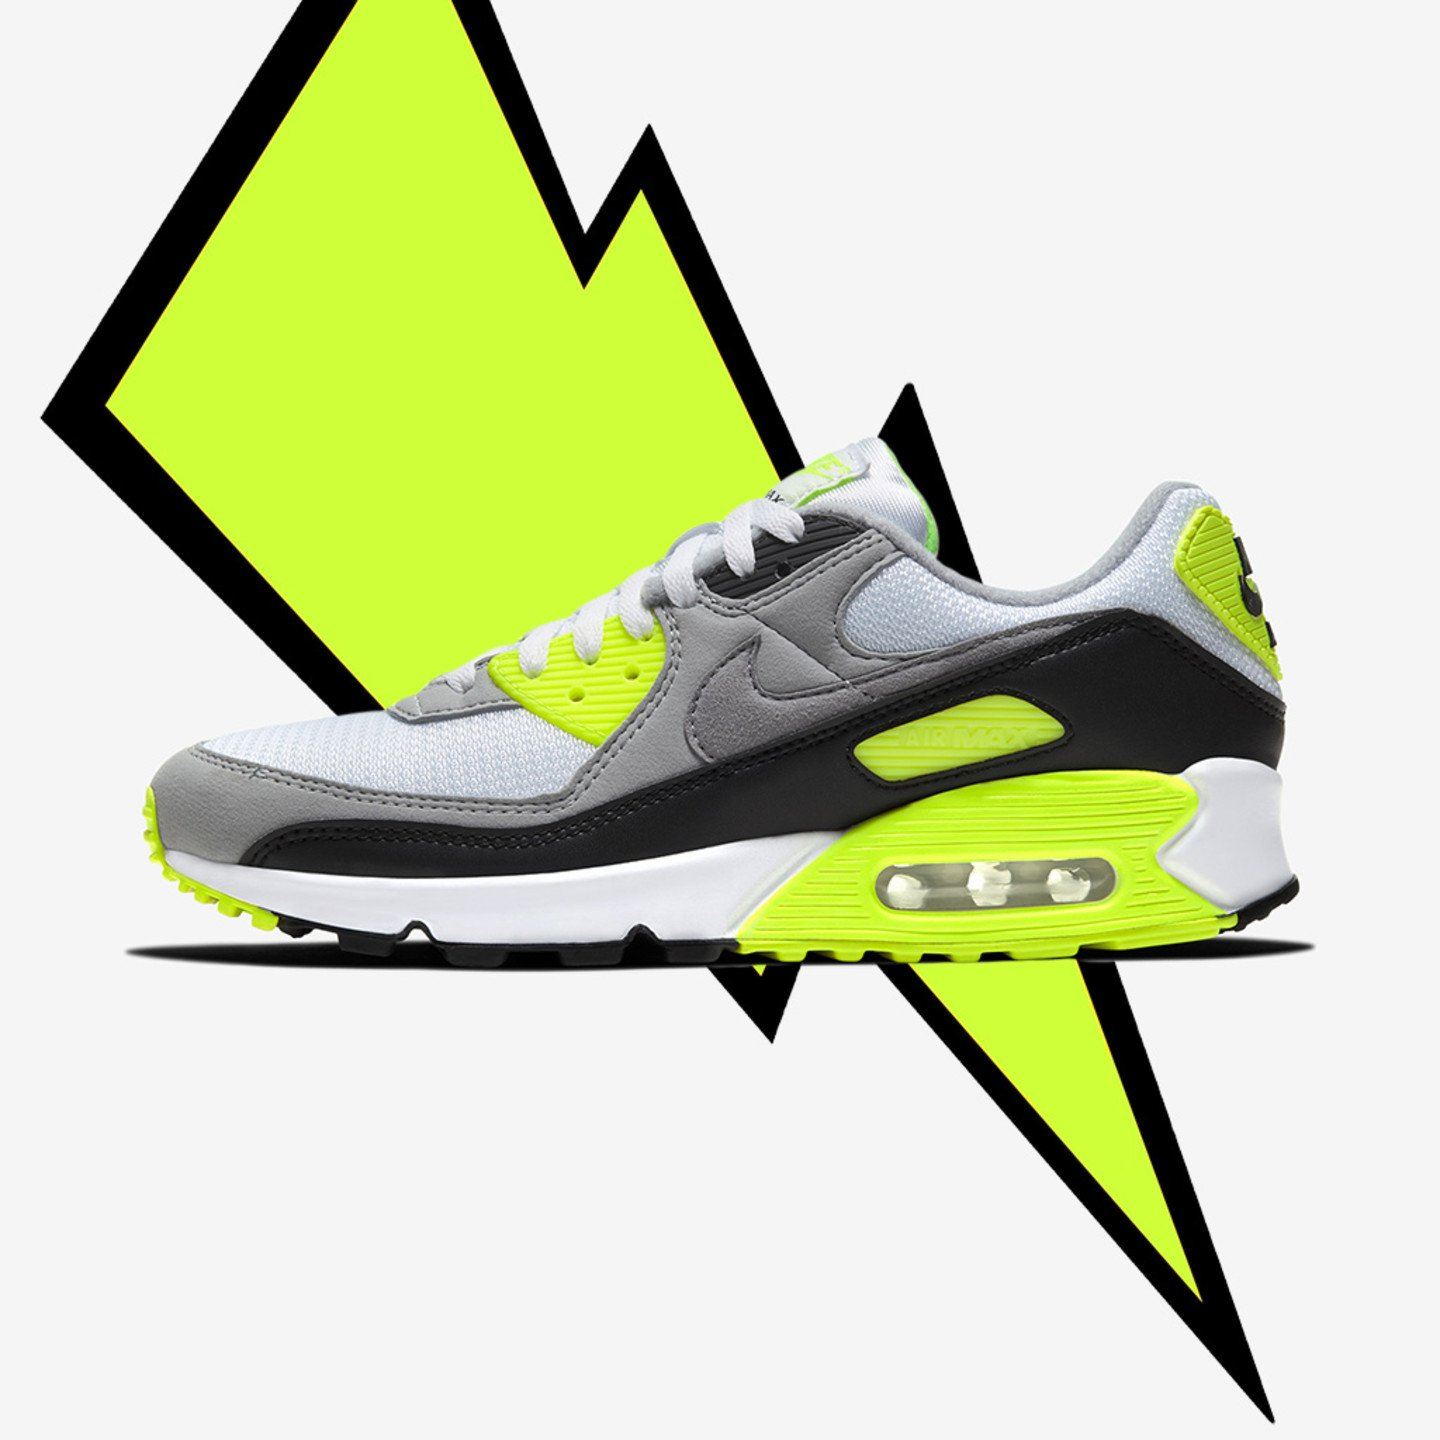 Nike Air Max 90 OG 'Volt' White / Particle Grey / Volt / Black CD0881-103